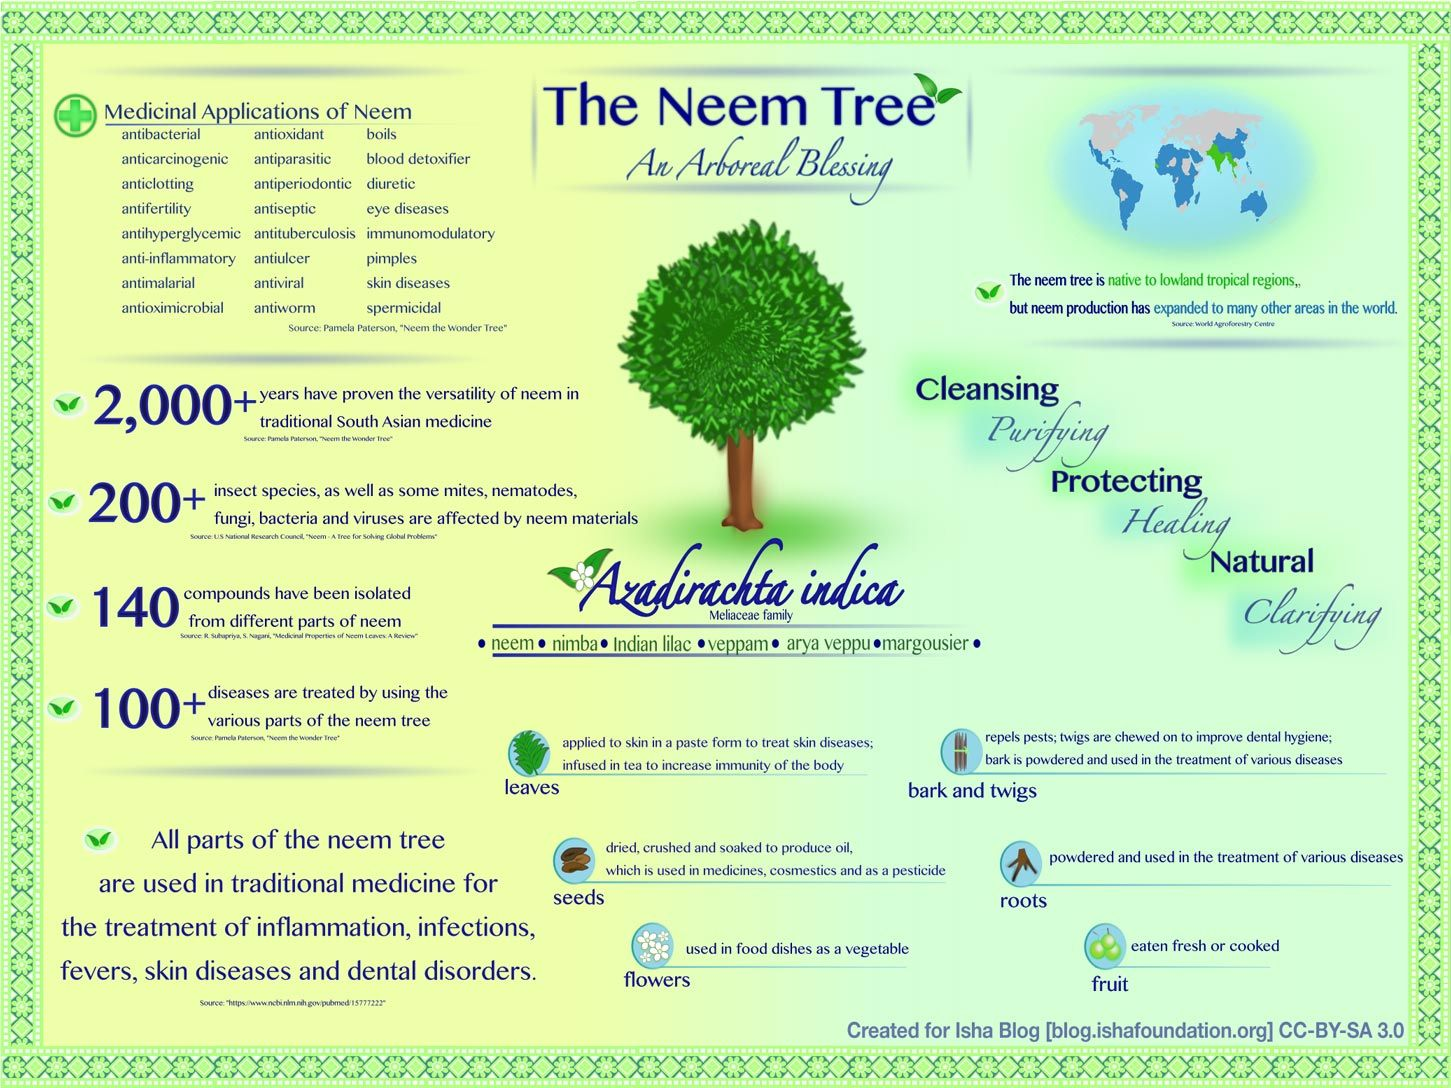 hindi essay on neem tree Neem seed pulp is useful for methane gas production neem has many uses the neem tree and uses of neem seeds, oil, leaves, bark and roots, information about the neem tree also called the doctor tree and its various uses.